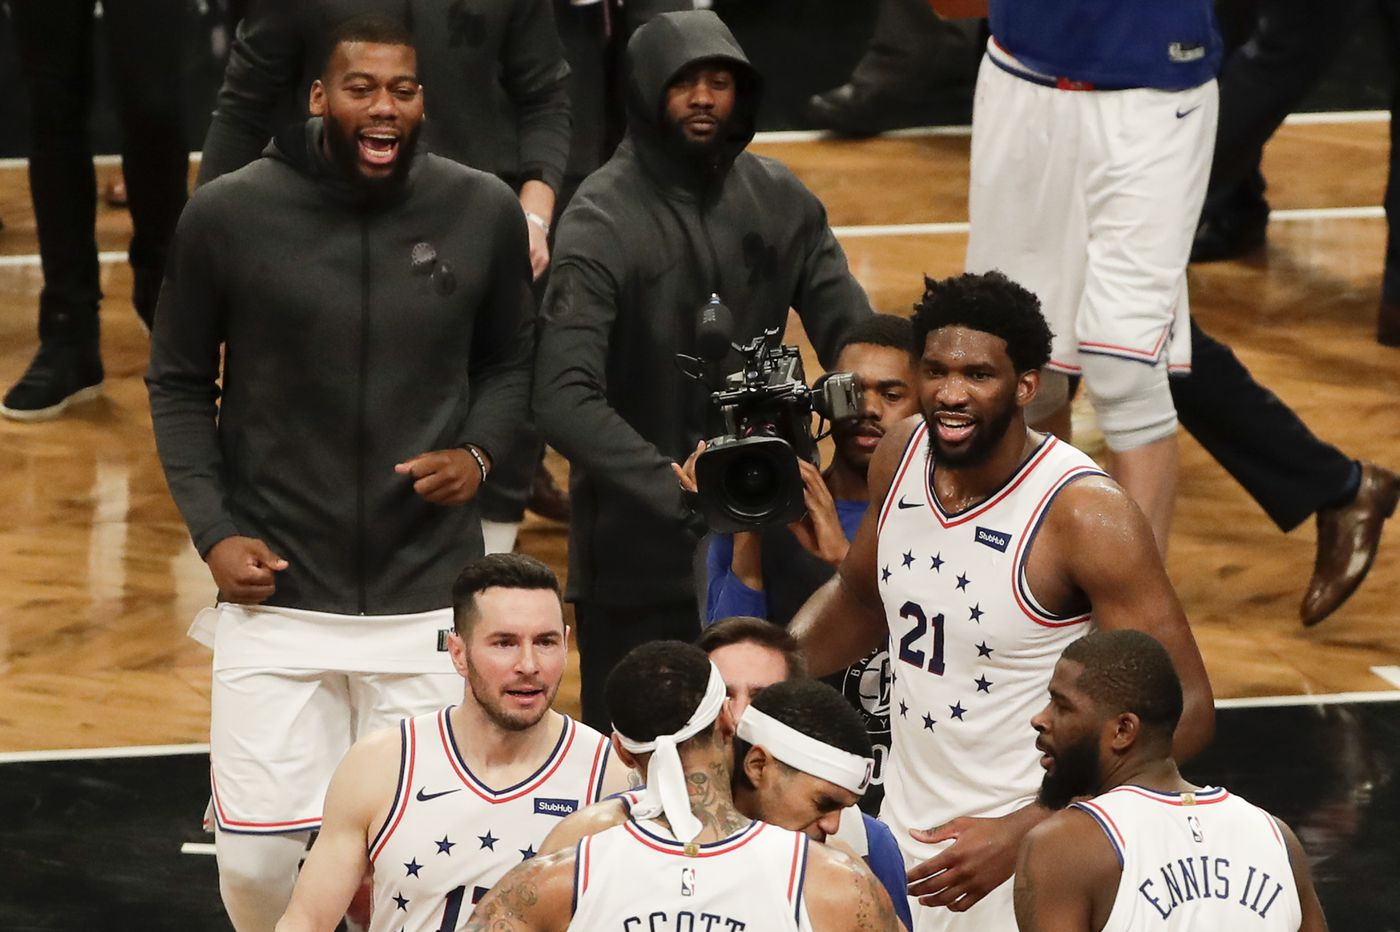 Sixers beat Nets to take 3-1 series lead as Joel Embiid dominates and Mike Scott sinks clutch shot